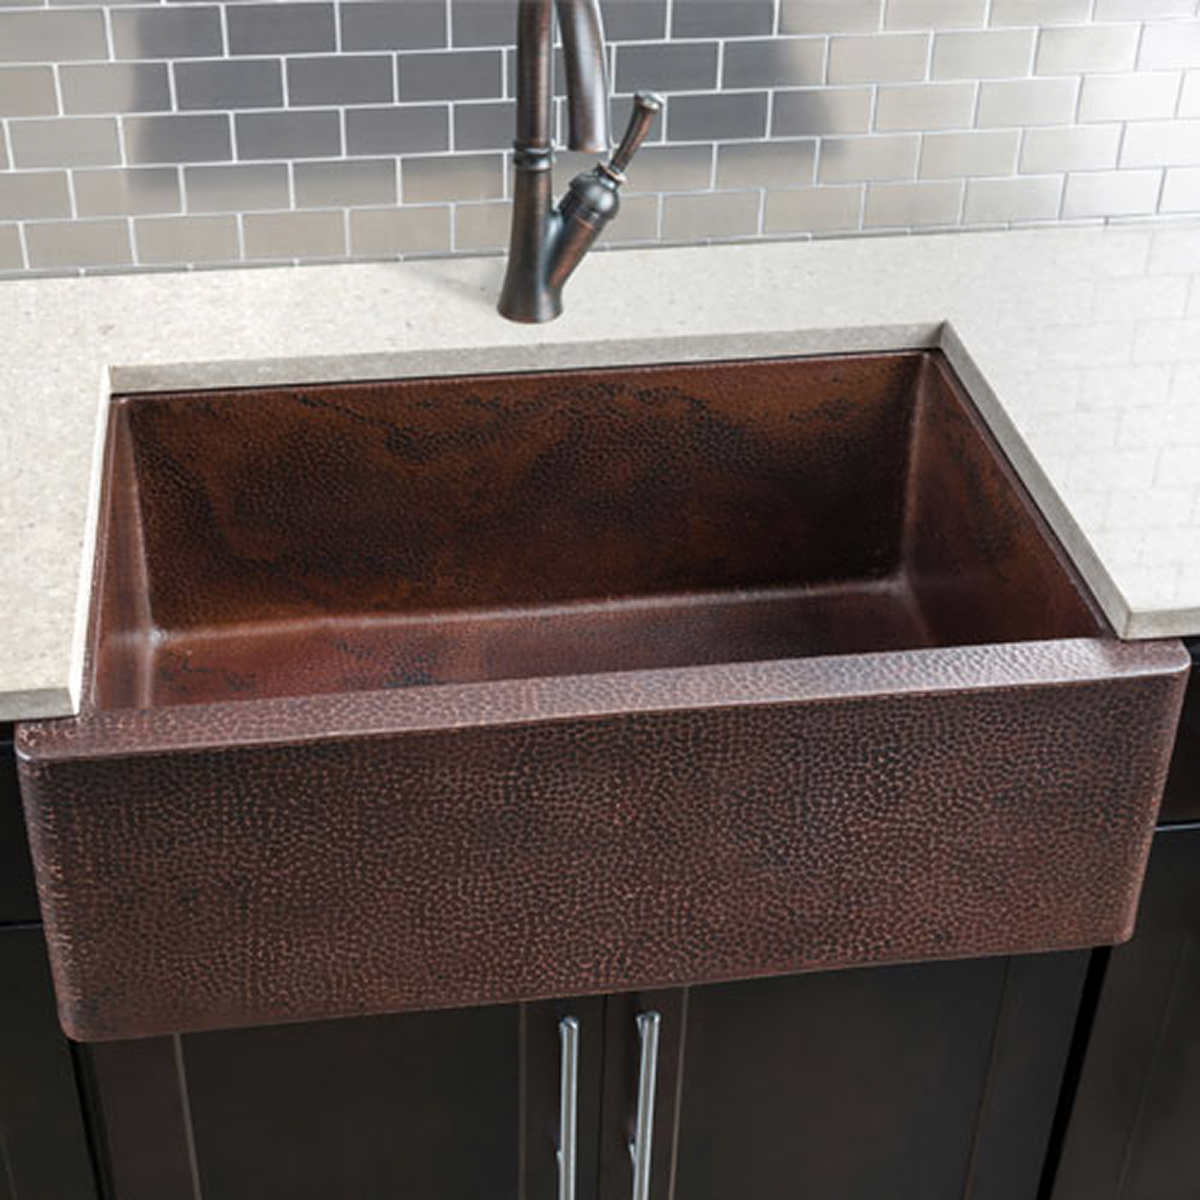 hahn copper single bowl farmhouse sink - Kitchen Sinks Pictures